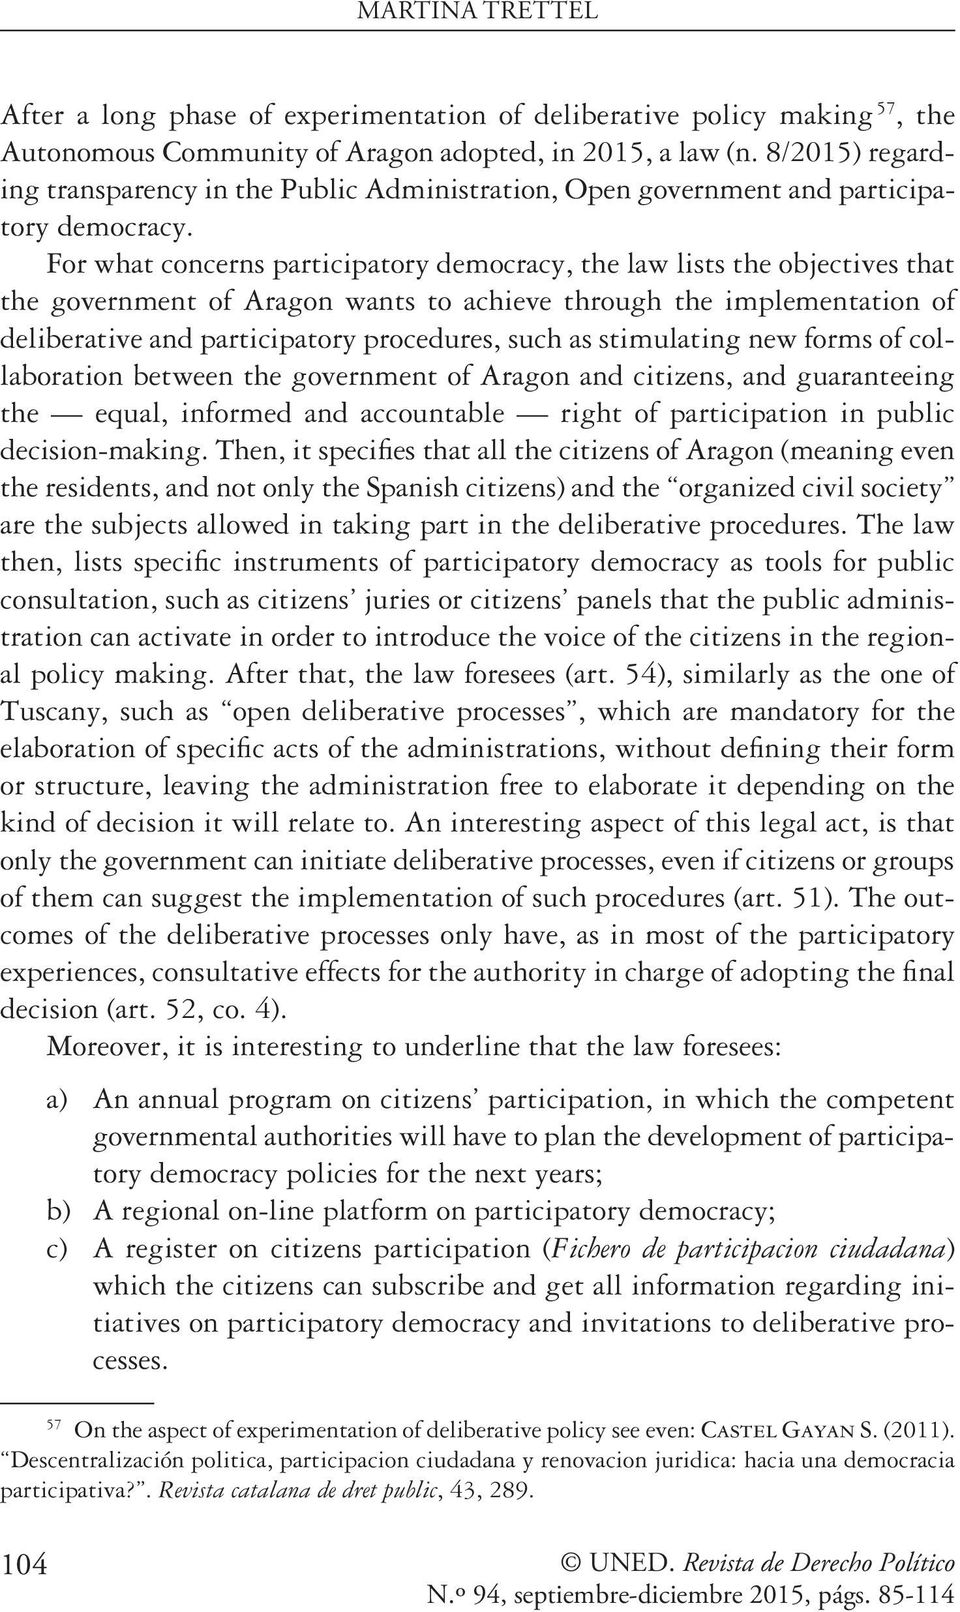 For what concerns participatory democracy, the law lists the objectives that the government of Aragon wants to achieve through the implementation of deliberative and participatory procedures, such as